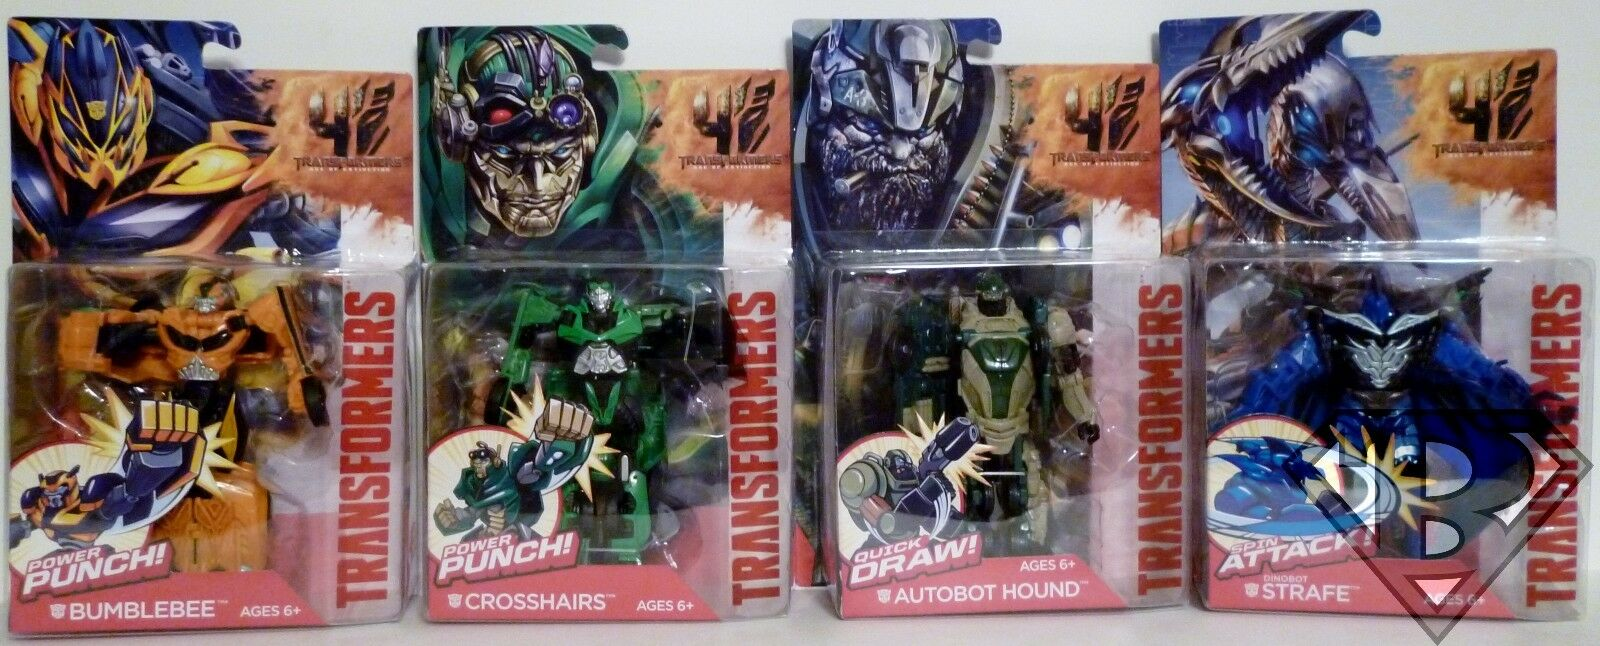 Transformers 4 Age of Extinction Power Battlers 5  inch Figures Set of 4 2014